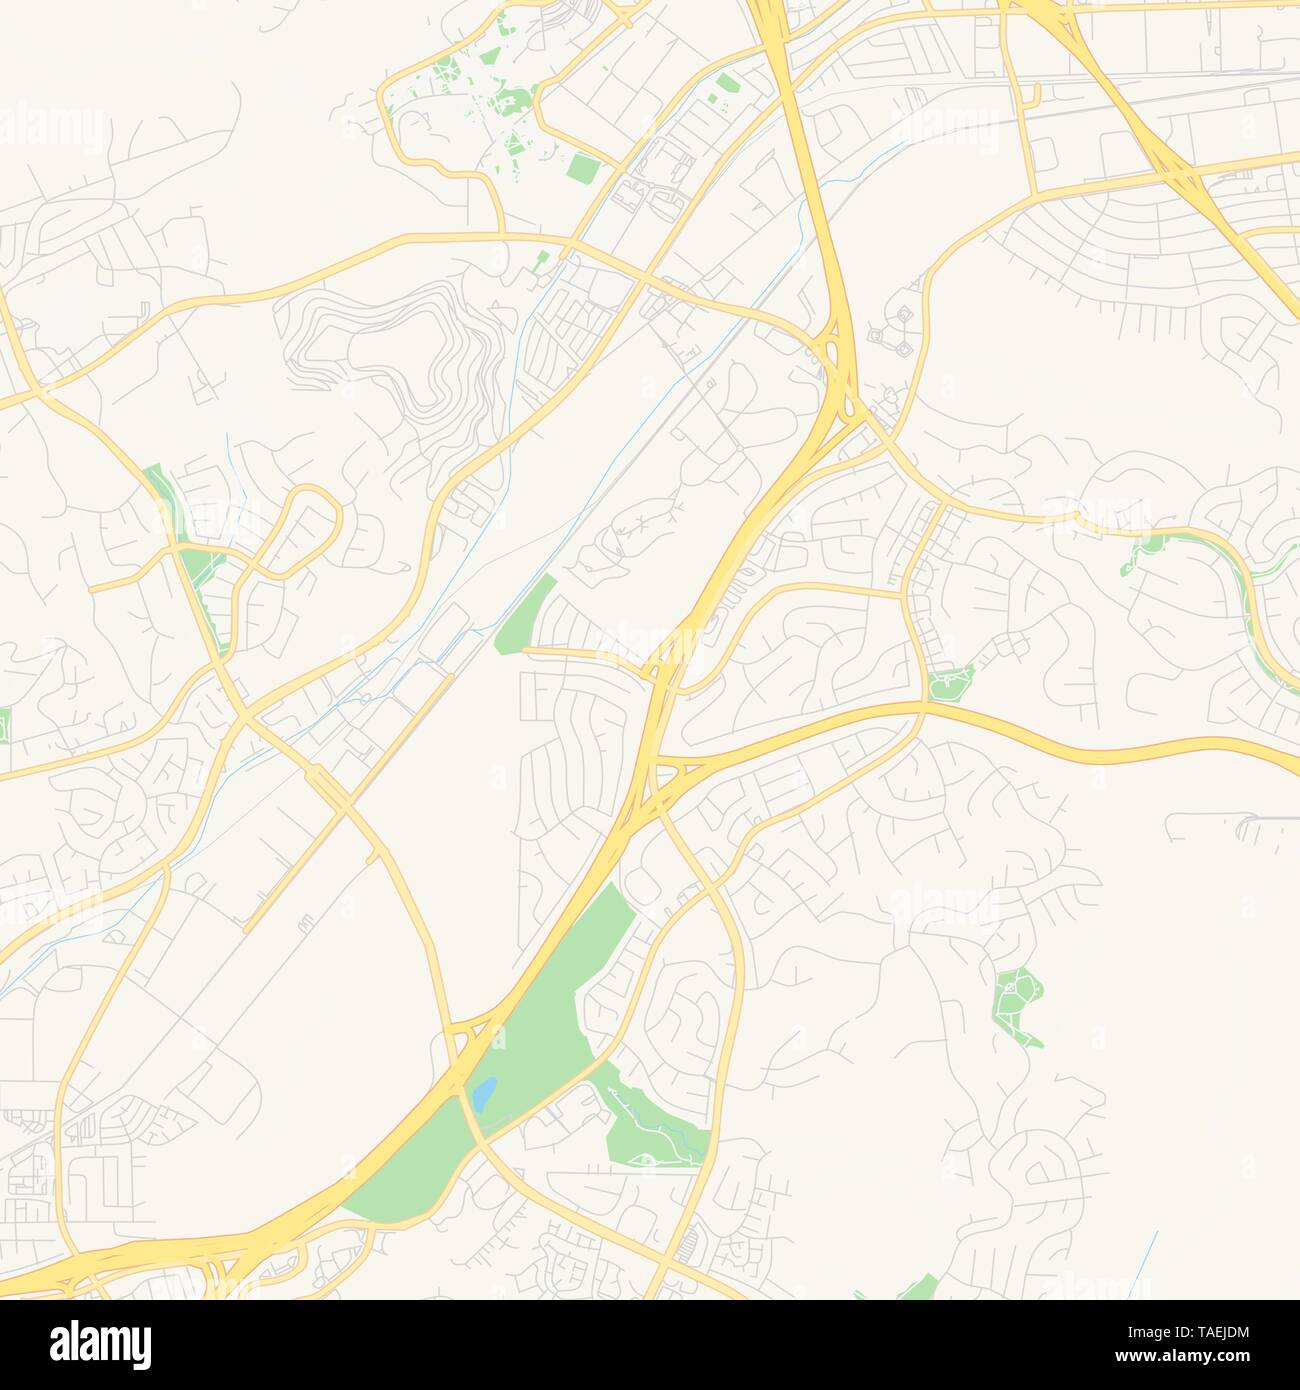 Empty vector map of Diamond Bar, California, USA, printable ... on oildale map, turlock map, west covina map, glendora map, imperial beach map, la puente map, north redondo beach map, clearlake oaks map, montclair map, city terrace map, discovery bay map, auberry map, south el monte map, big pine map, buellton map, 1000 palms map, marshall canyon map, city of bell map, downtown l.a. map, fish camp map,